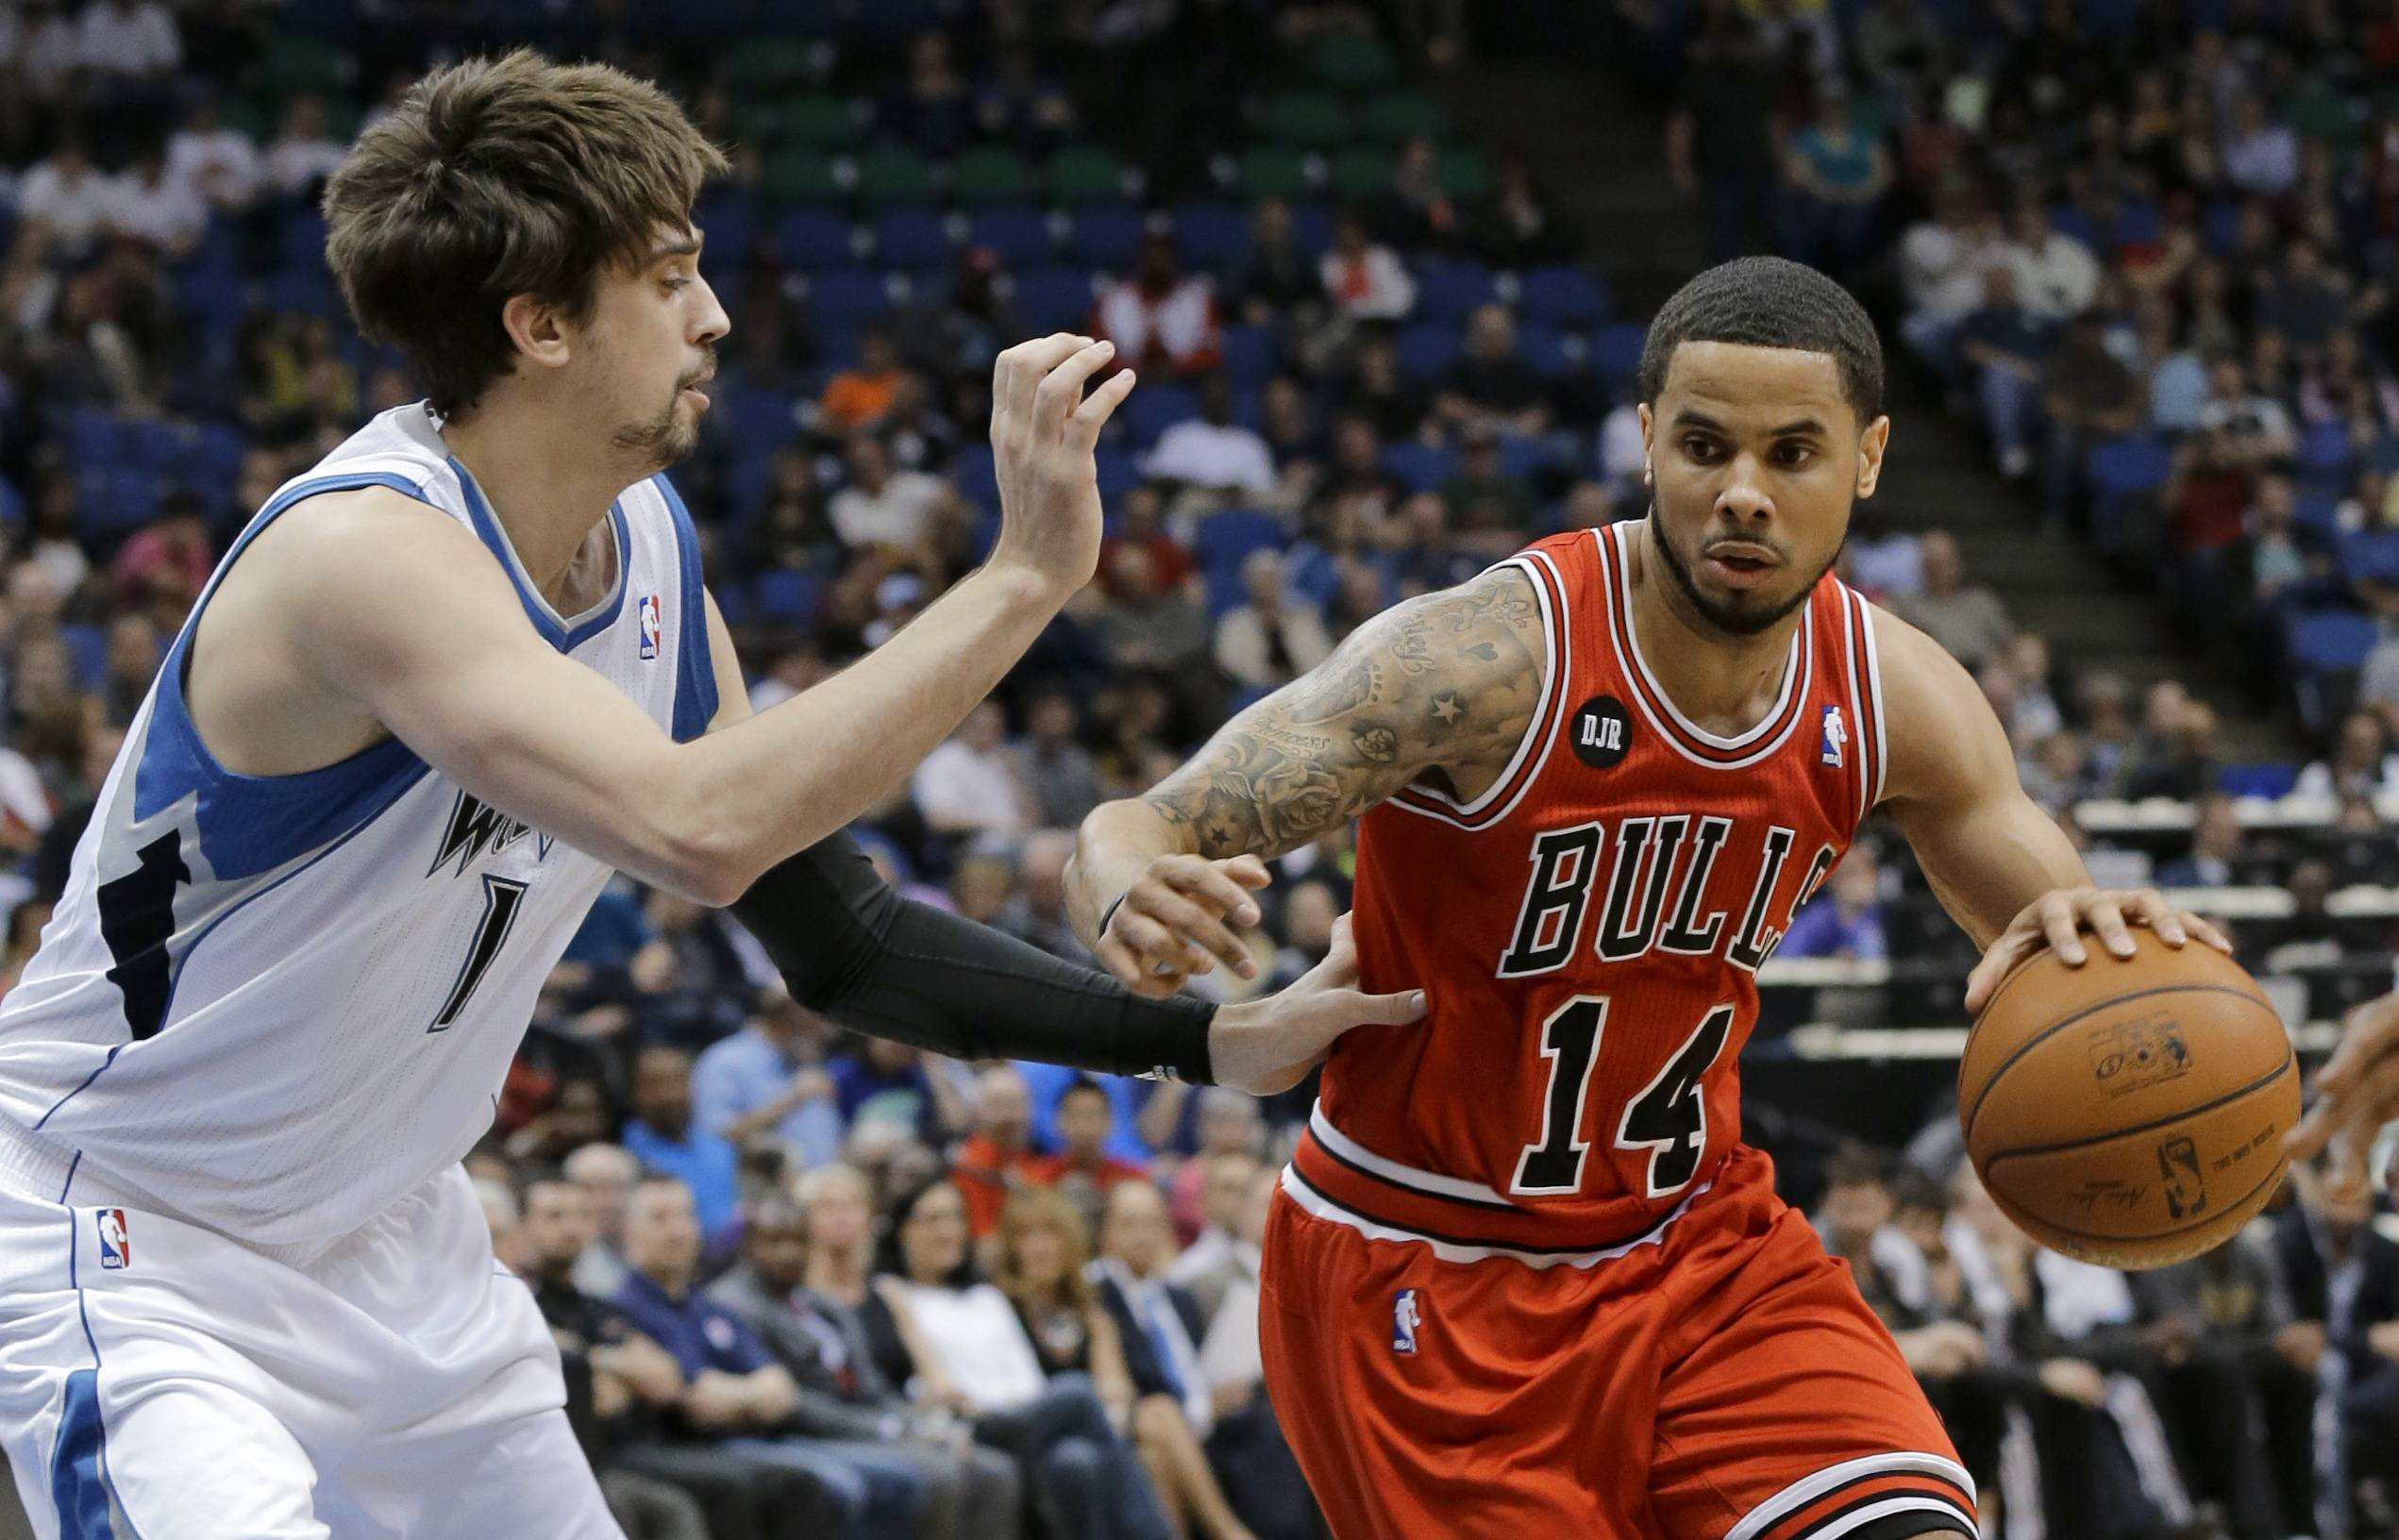 Chicago Bulls guard D.J. Augustin (14) drives against Minnesota Timberwolves guard Alexey Shved, left, of Russia, during the second quarter of an NBA basketball game in Minneapolis, Wednesday, April 9, 2014.